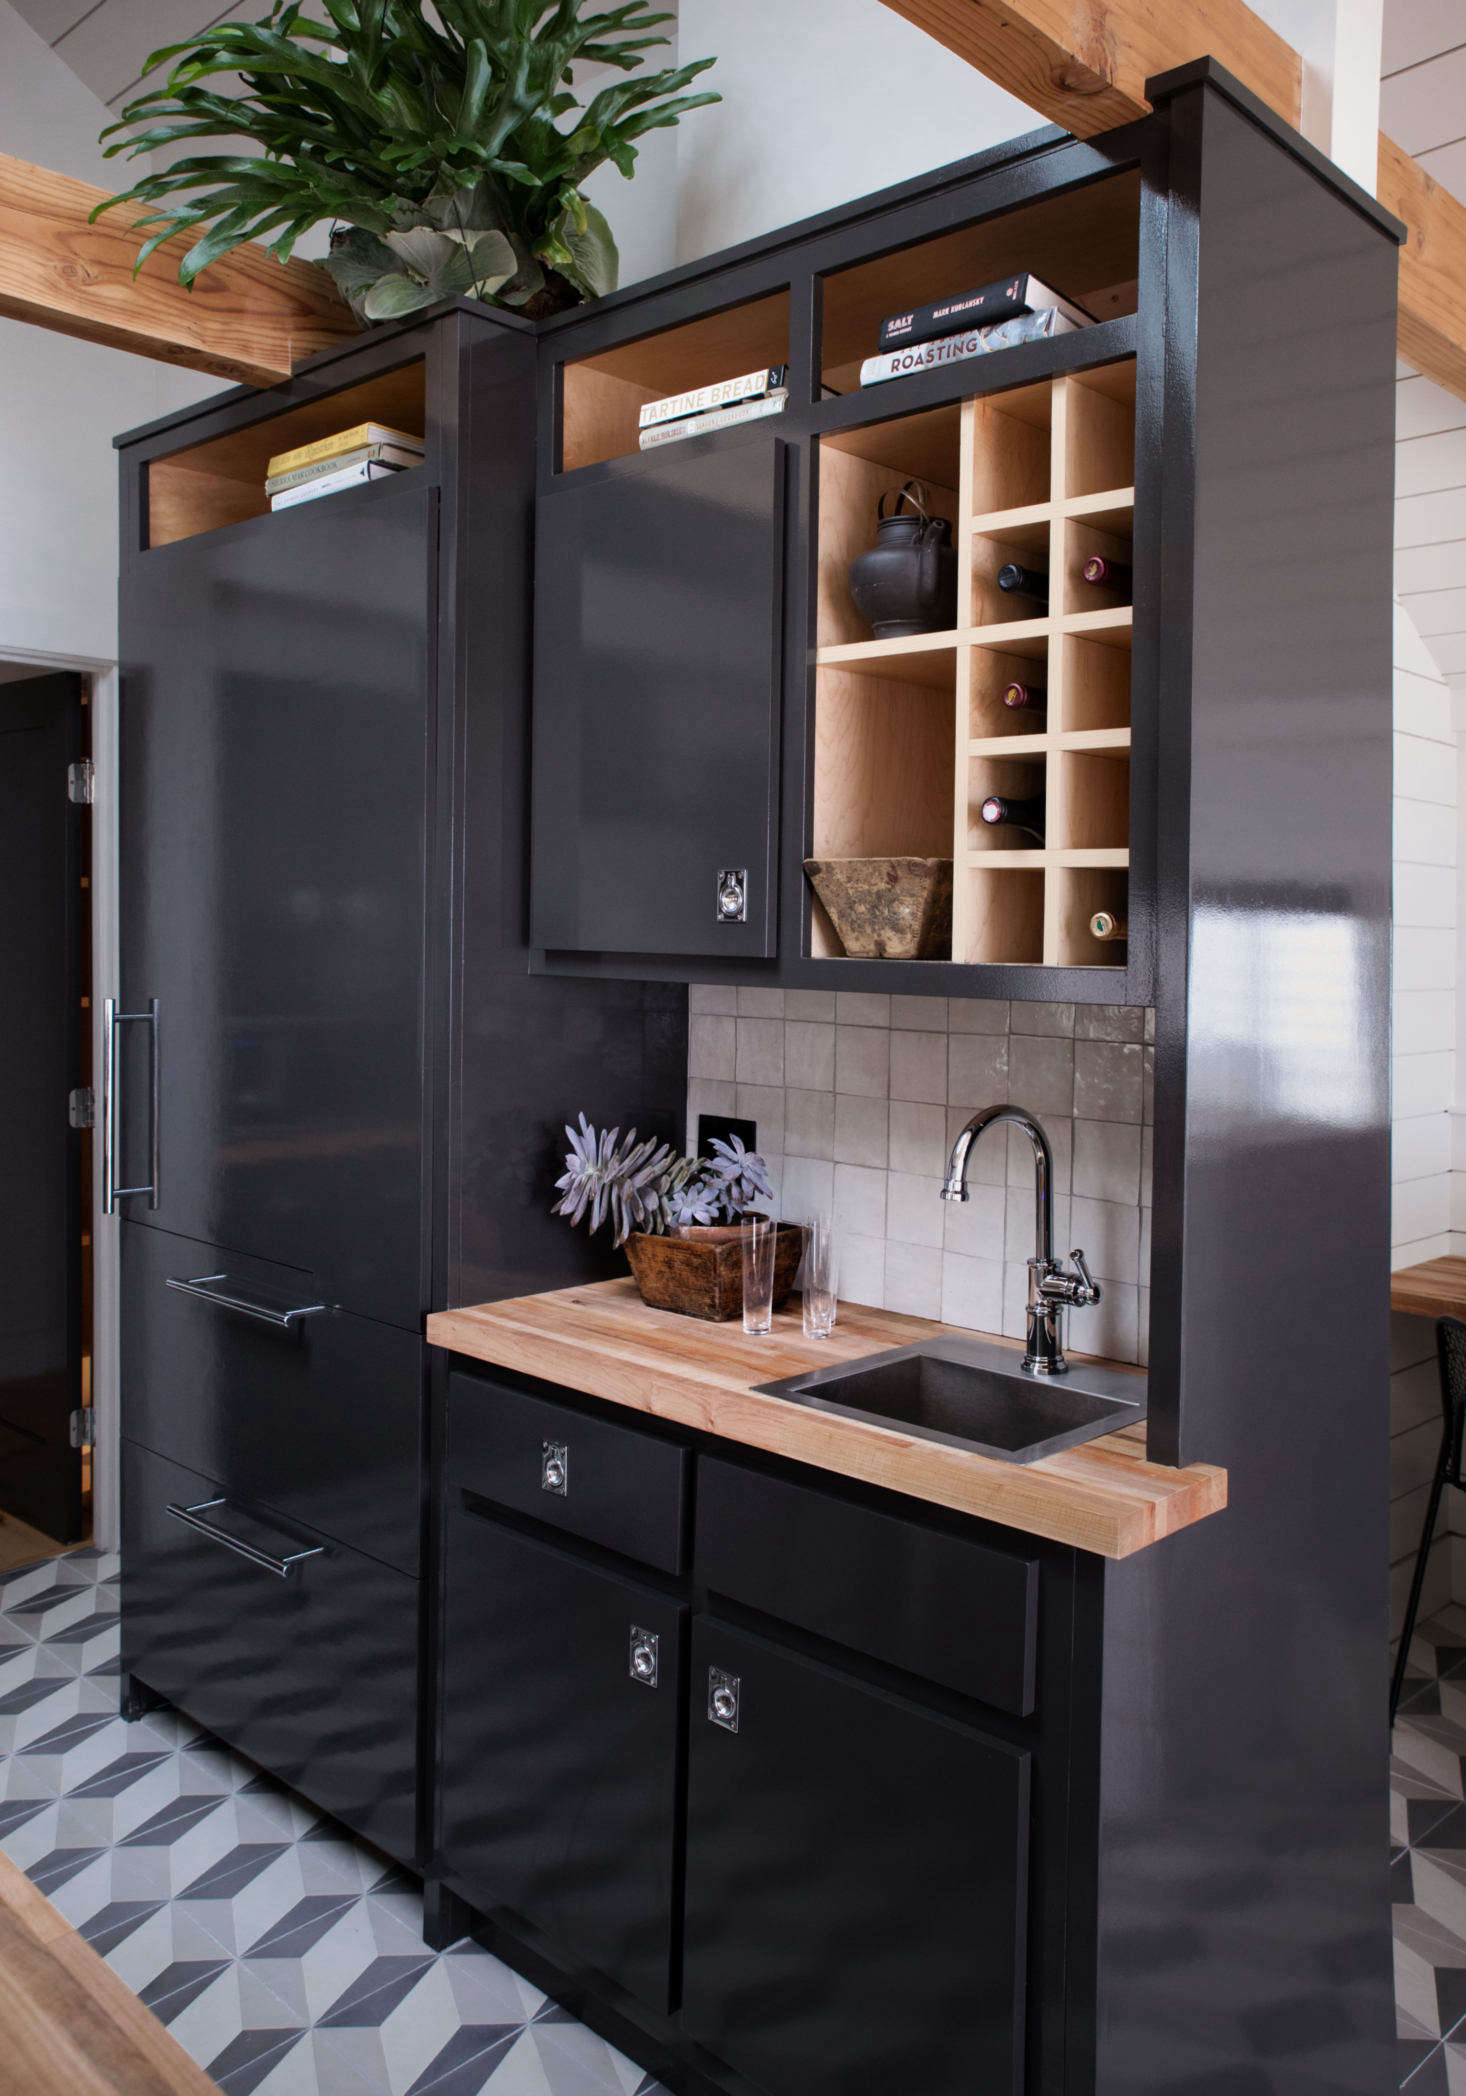 The paneled fridge and bar double as a room divider, and create a study nook and small hall leading to the bath.